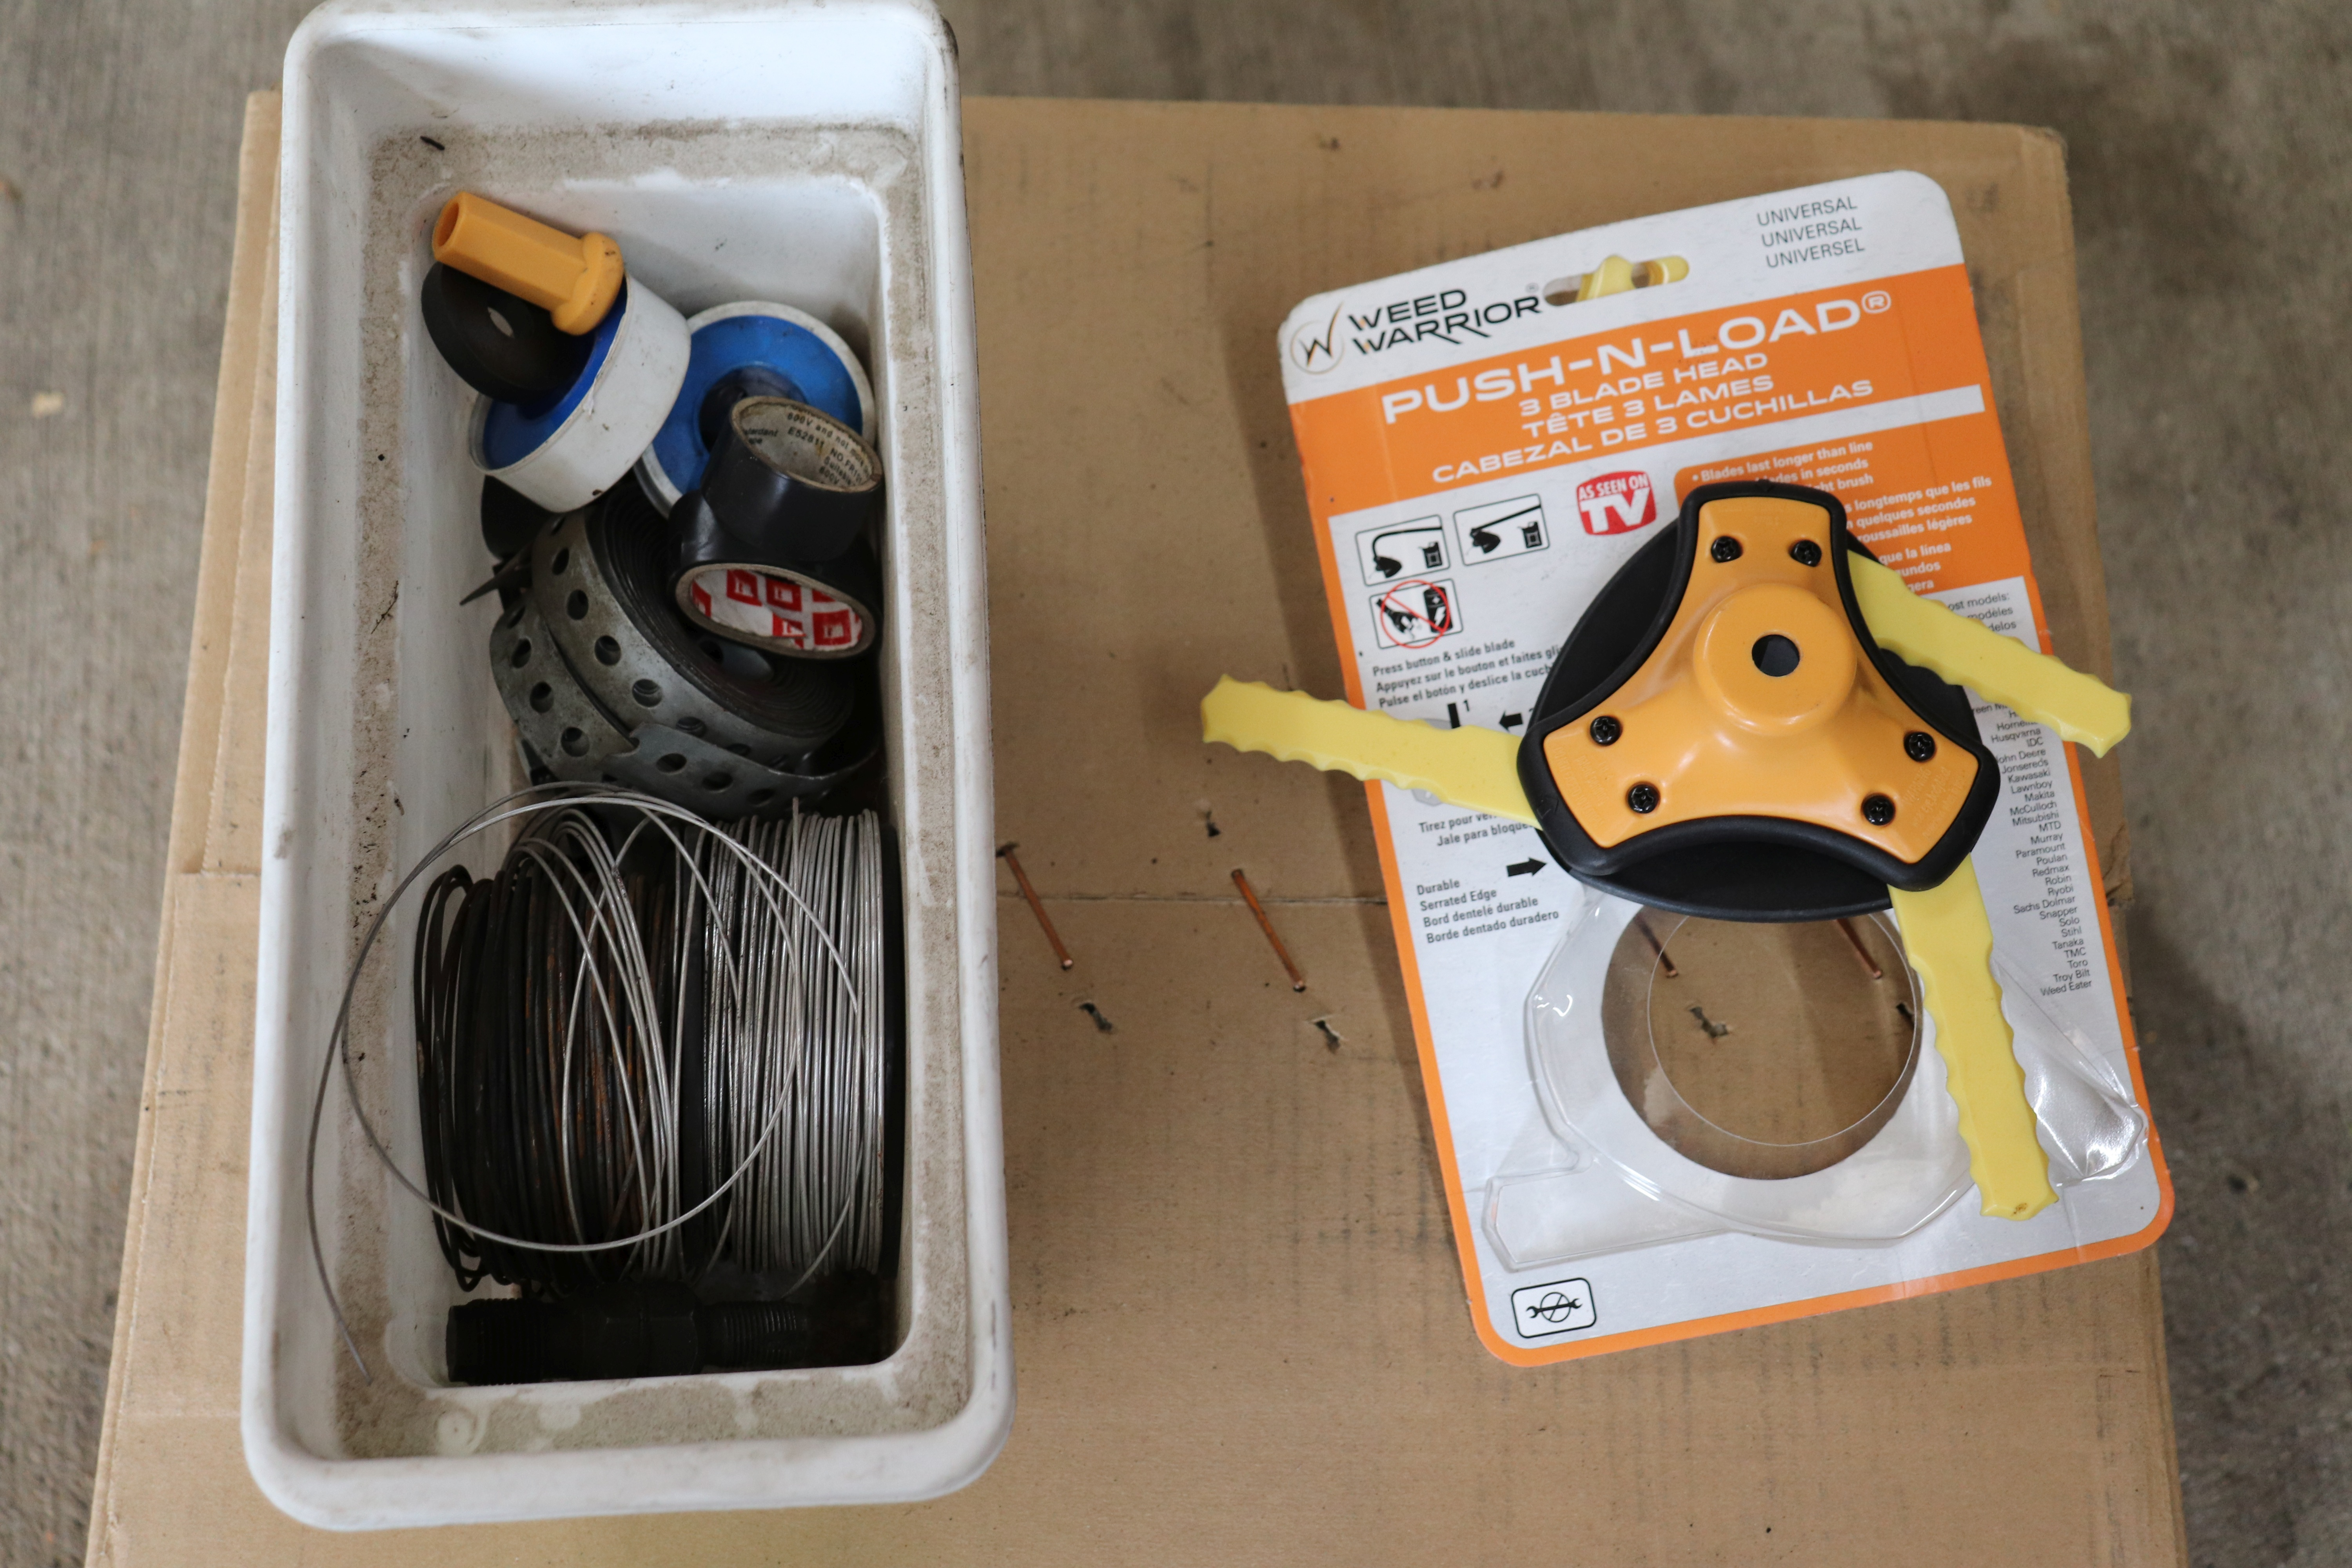 Box of wire and electrical tape and a push and load three-headed weed wacker head